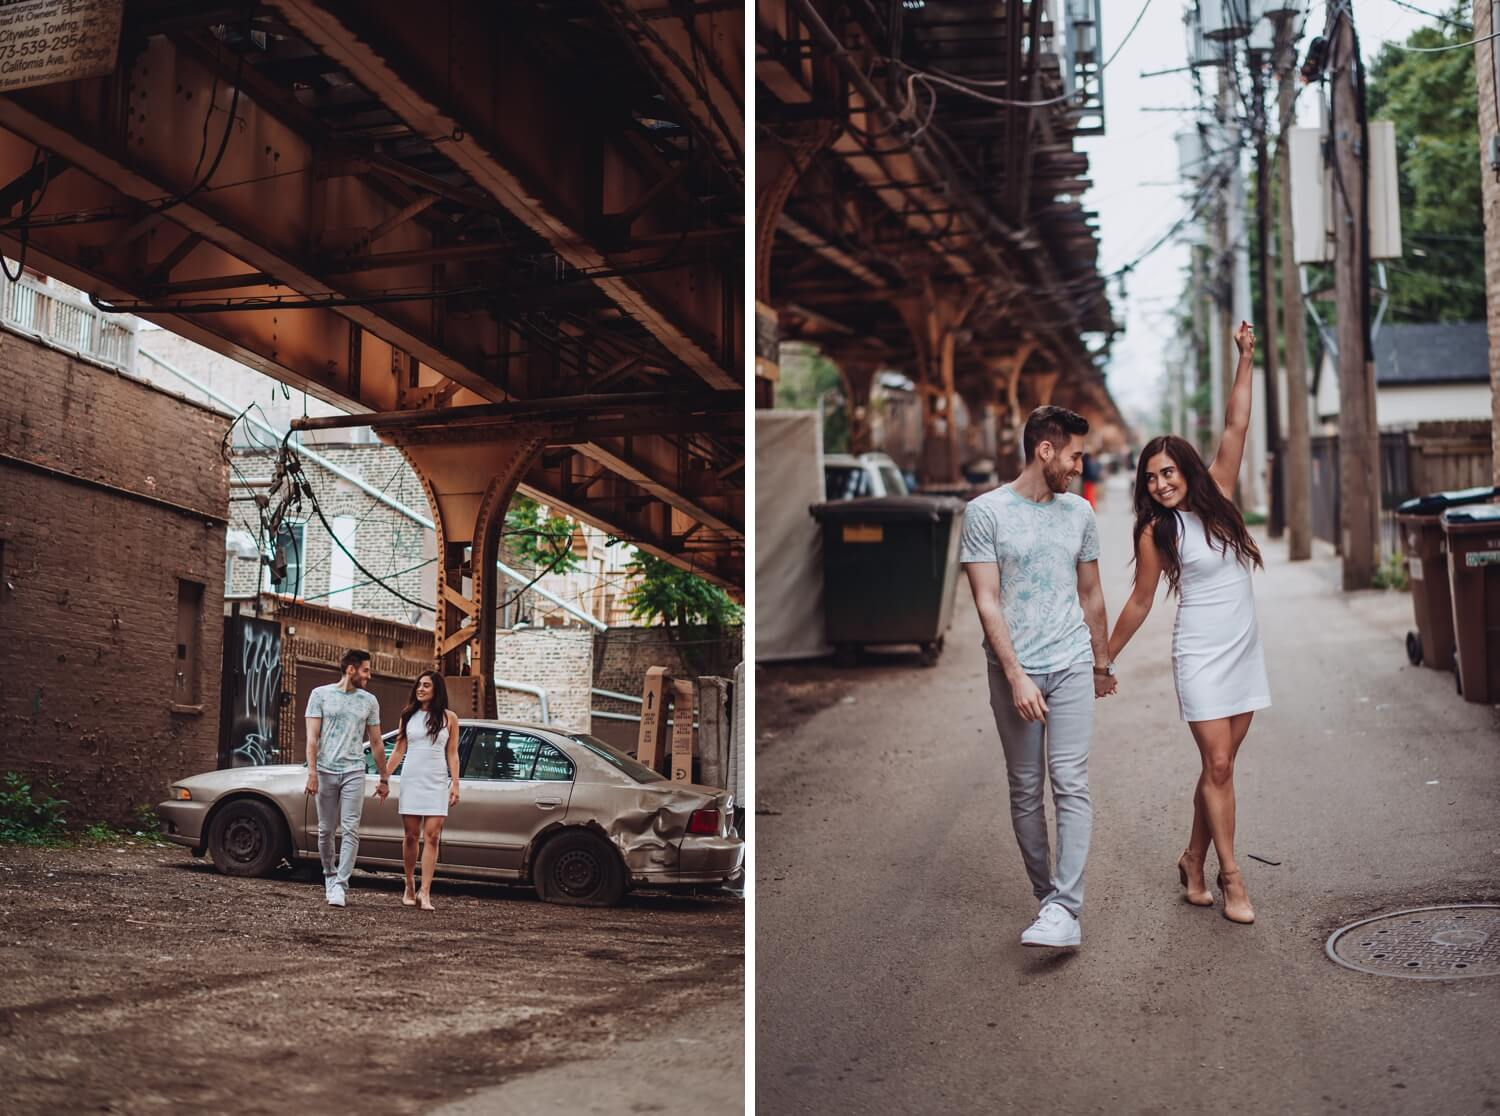 Wicker Park Engagement Photographer - The Adamkovi, under the train tracks